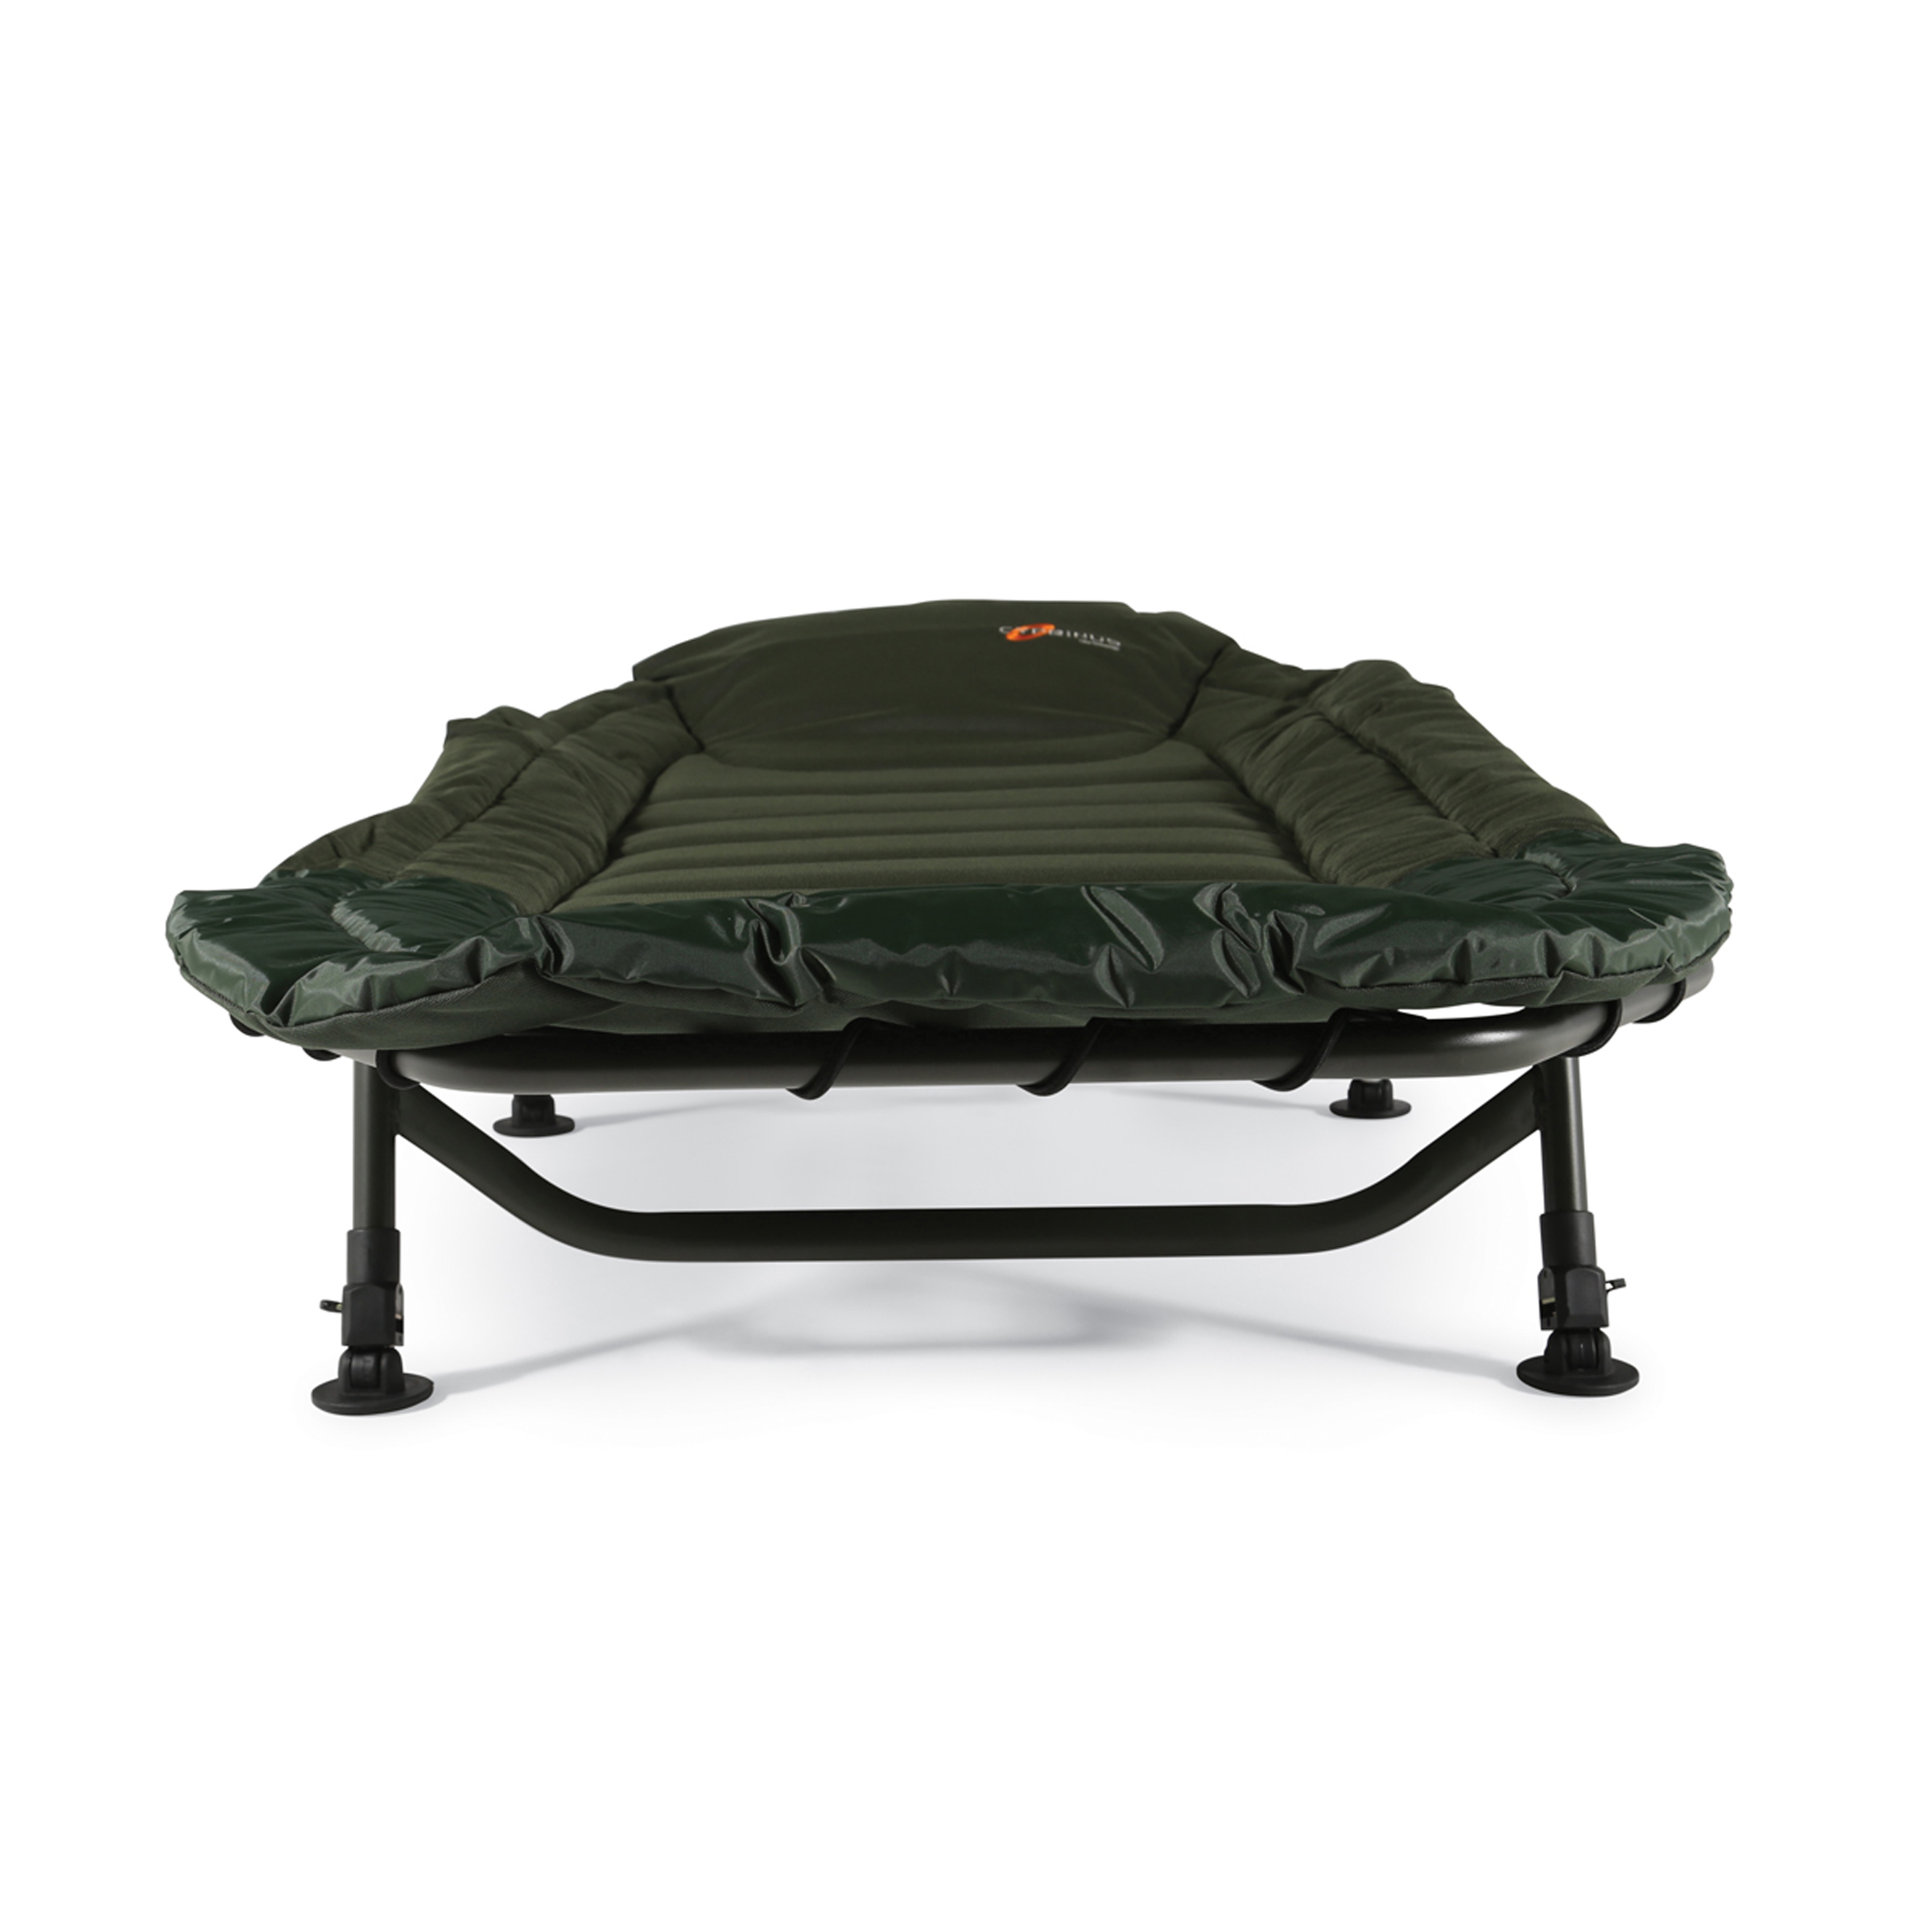 fishing bed chair used bar height table and chairs canada cyprinus carp bedchair free memory